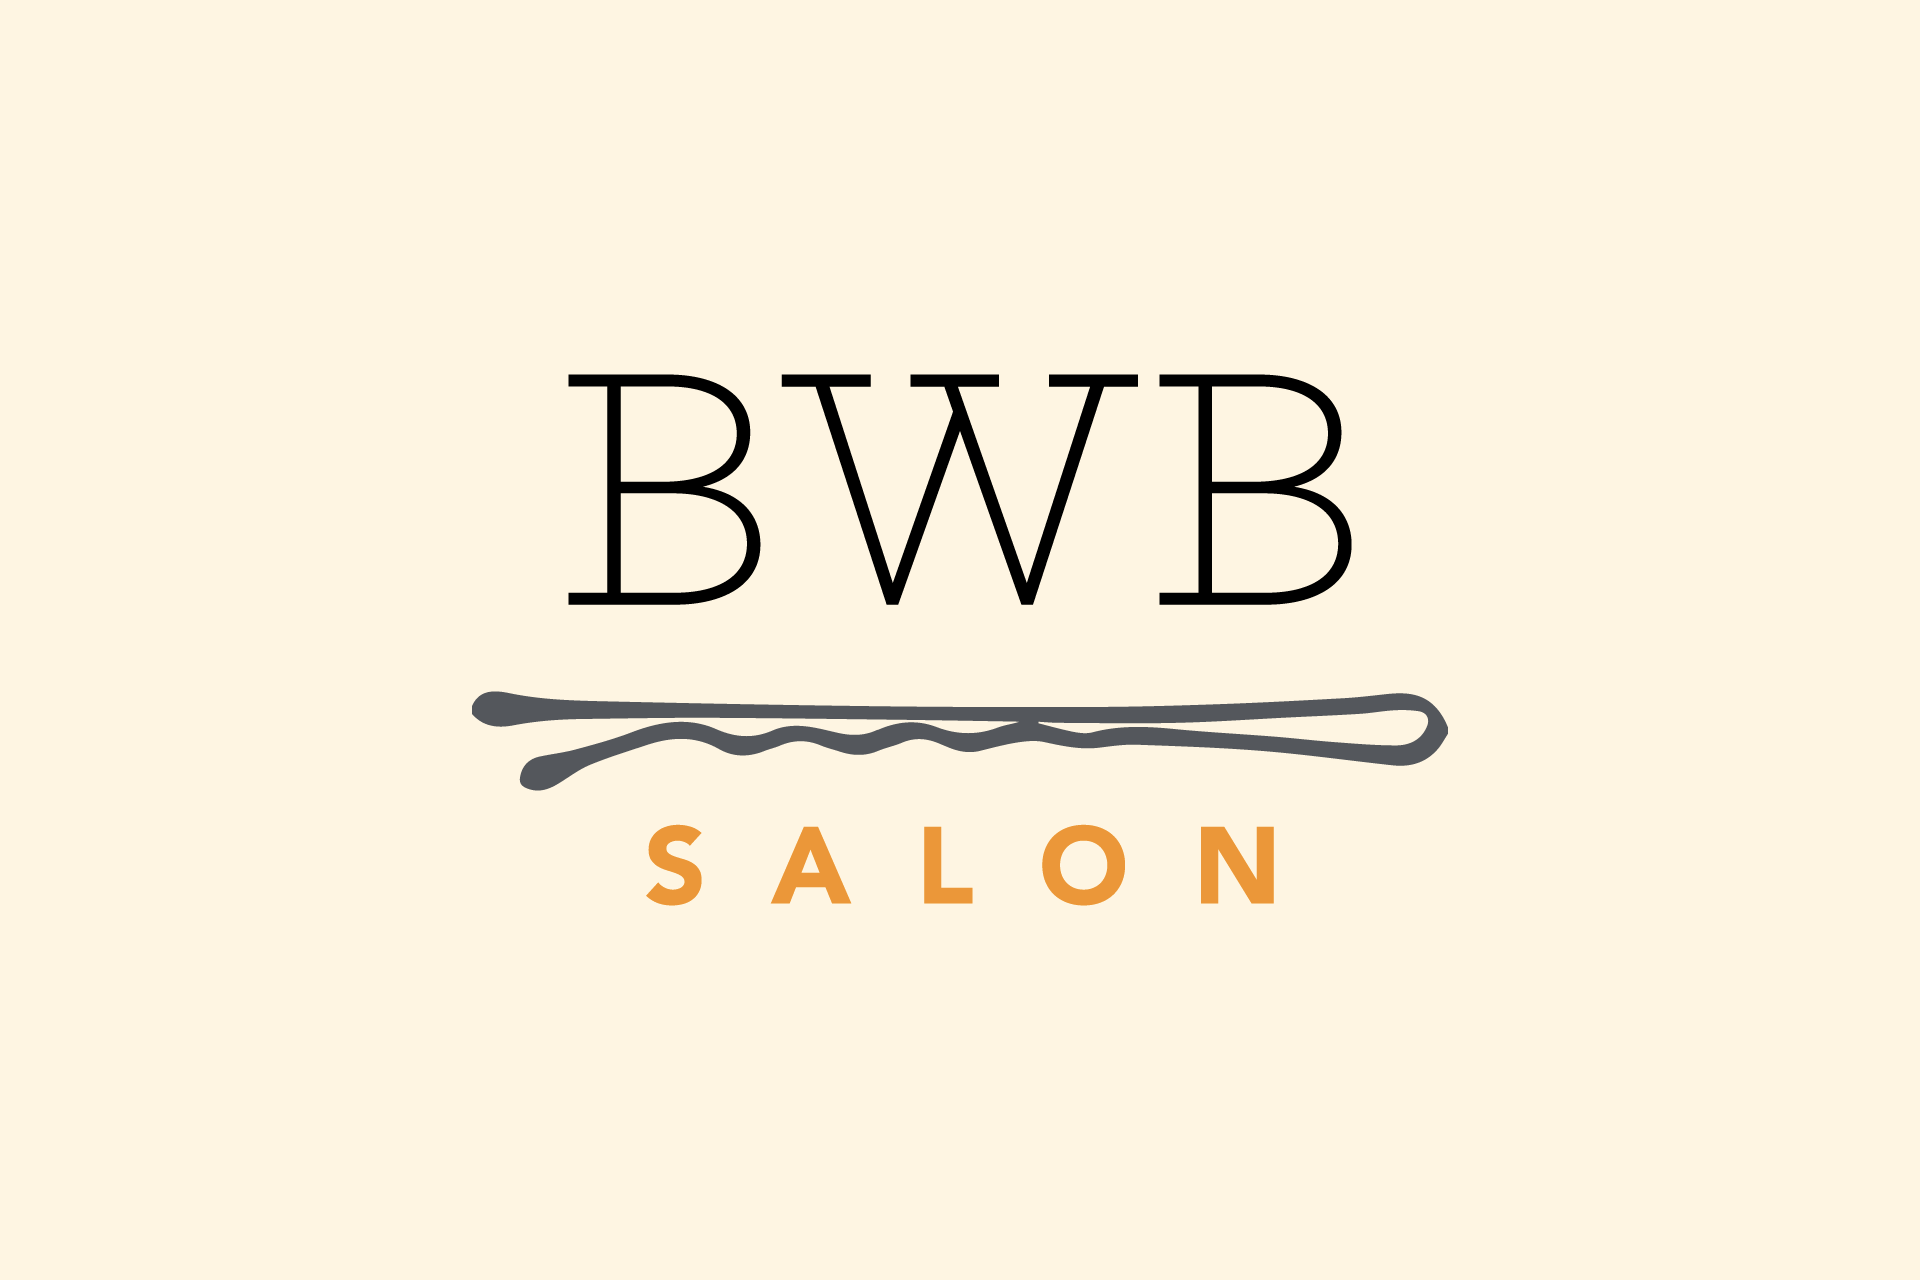 Bwb salon in charlotte nc vagaro for 8 the salon charlotte nc